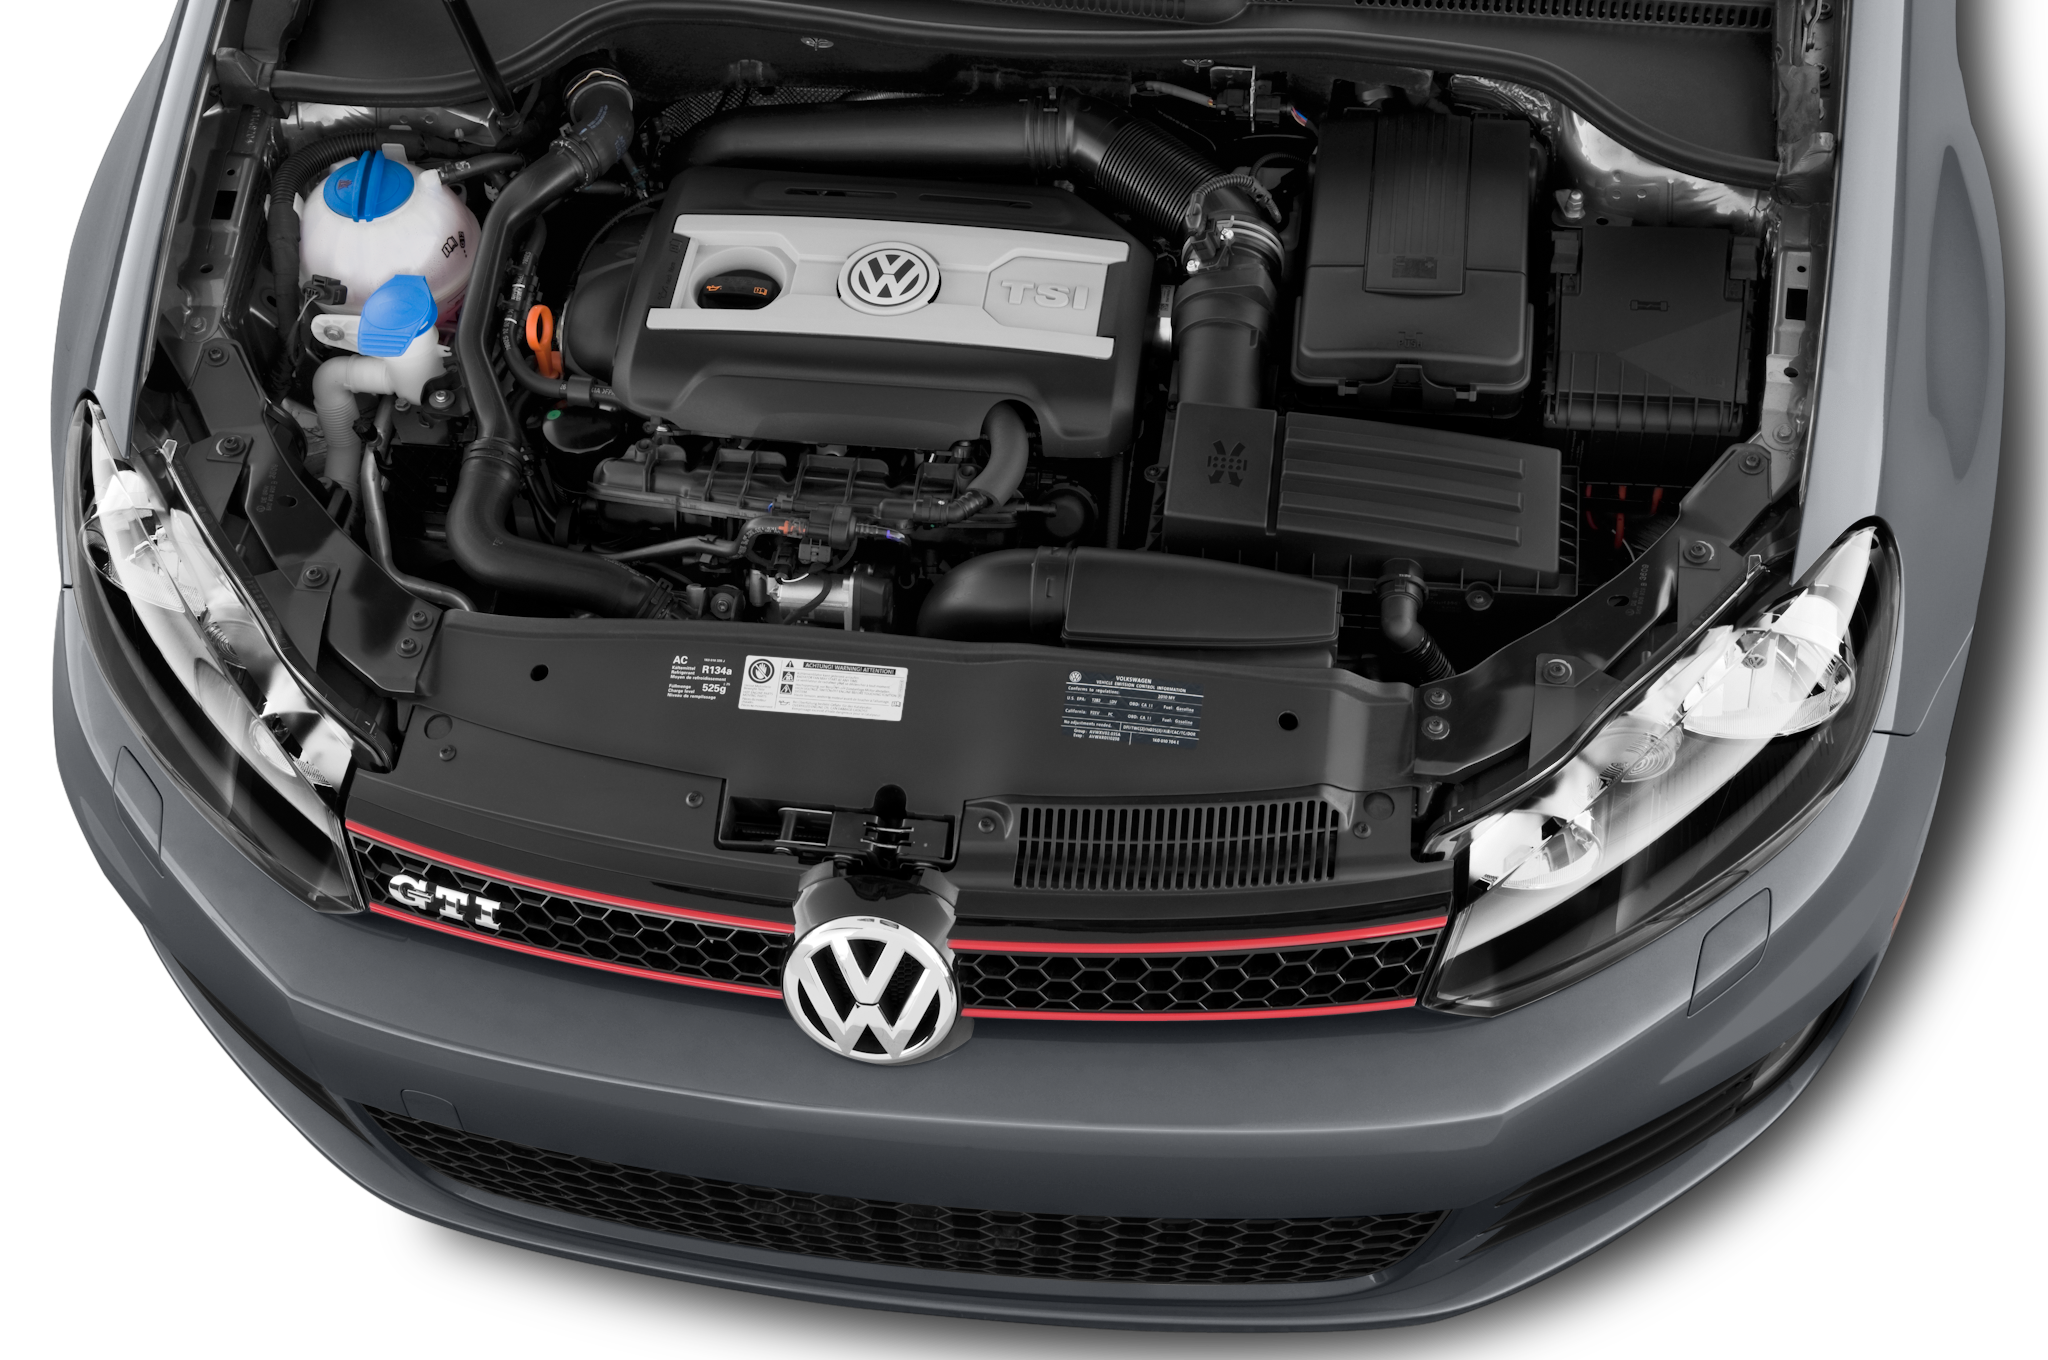 Vw Gti Engine Cooling System How One Owner Built A 375 Hp 2011 Volkswagen 29 66